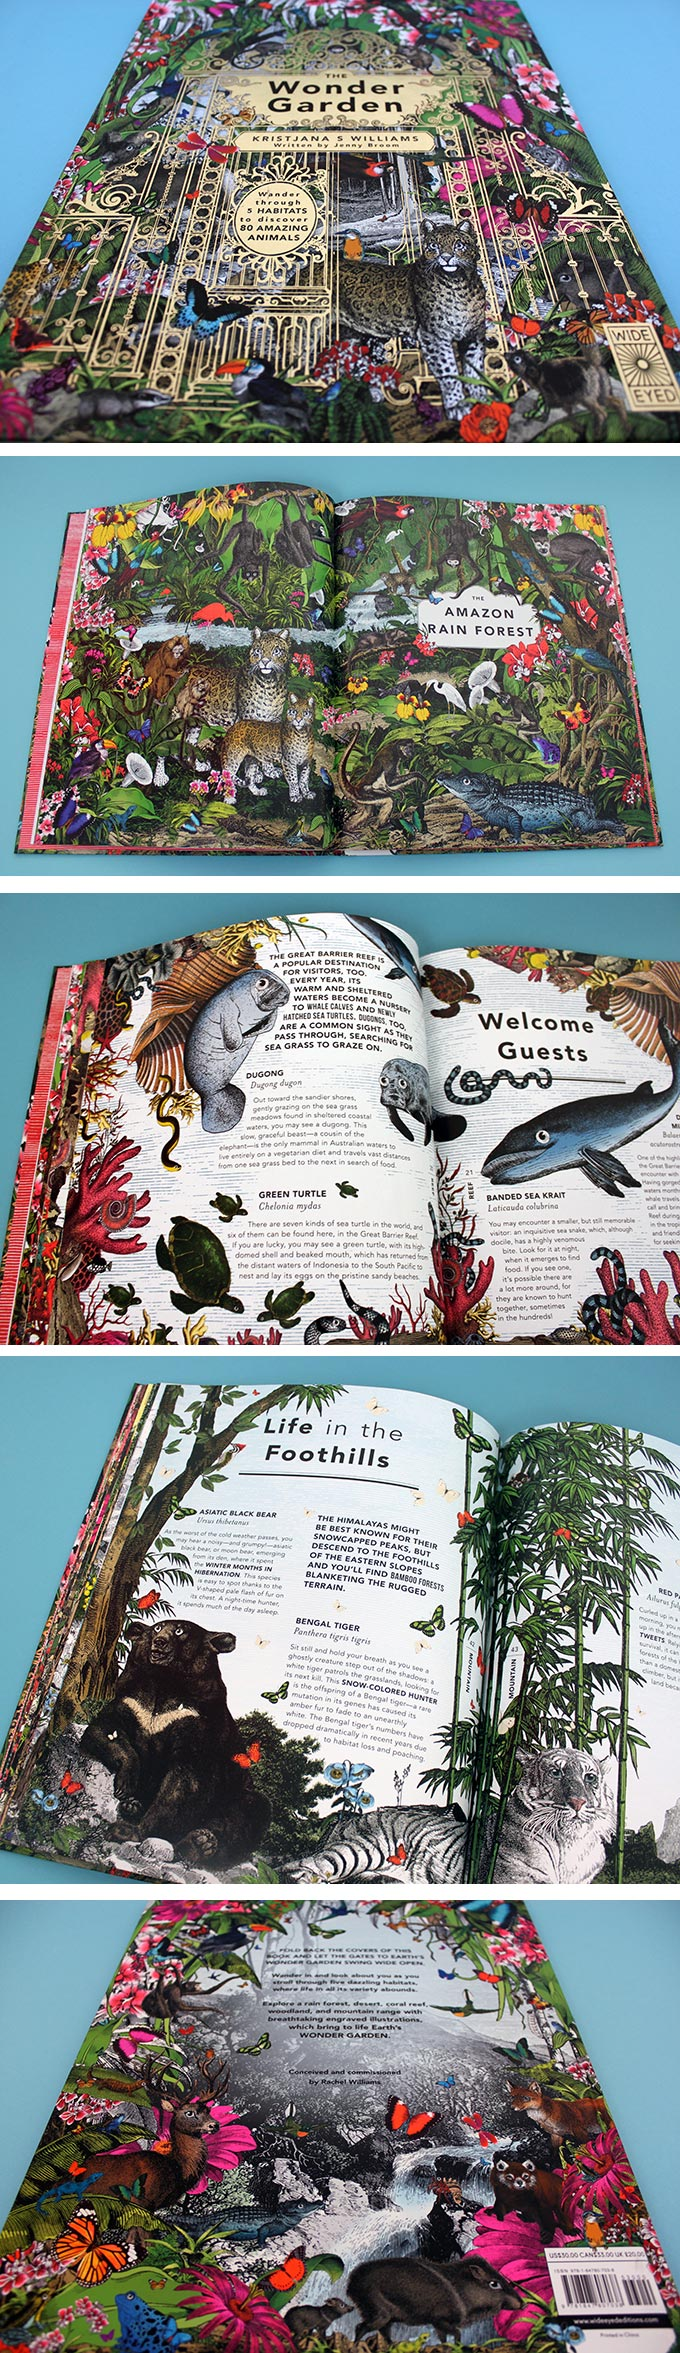 The Wonder Garden by Jenny Broom and illustrated by Kristjana S Williams